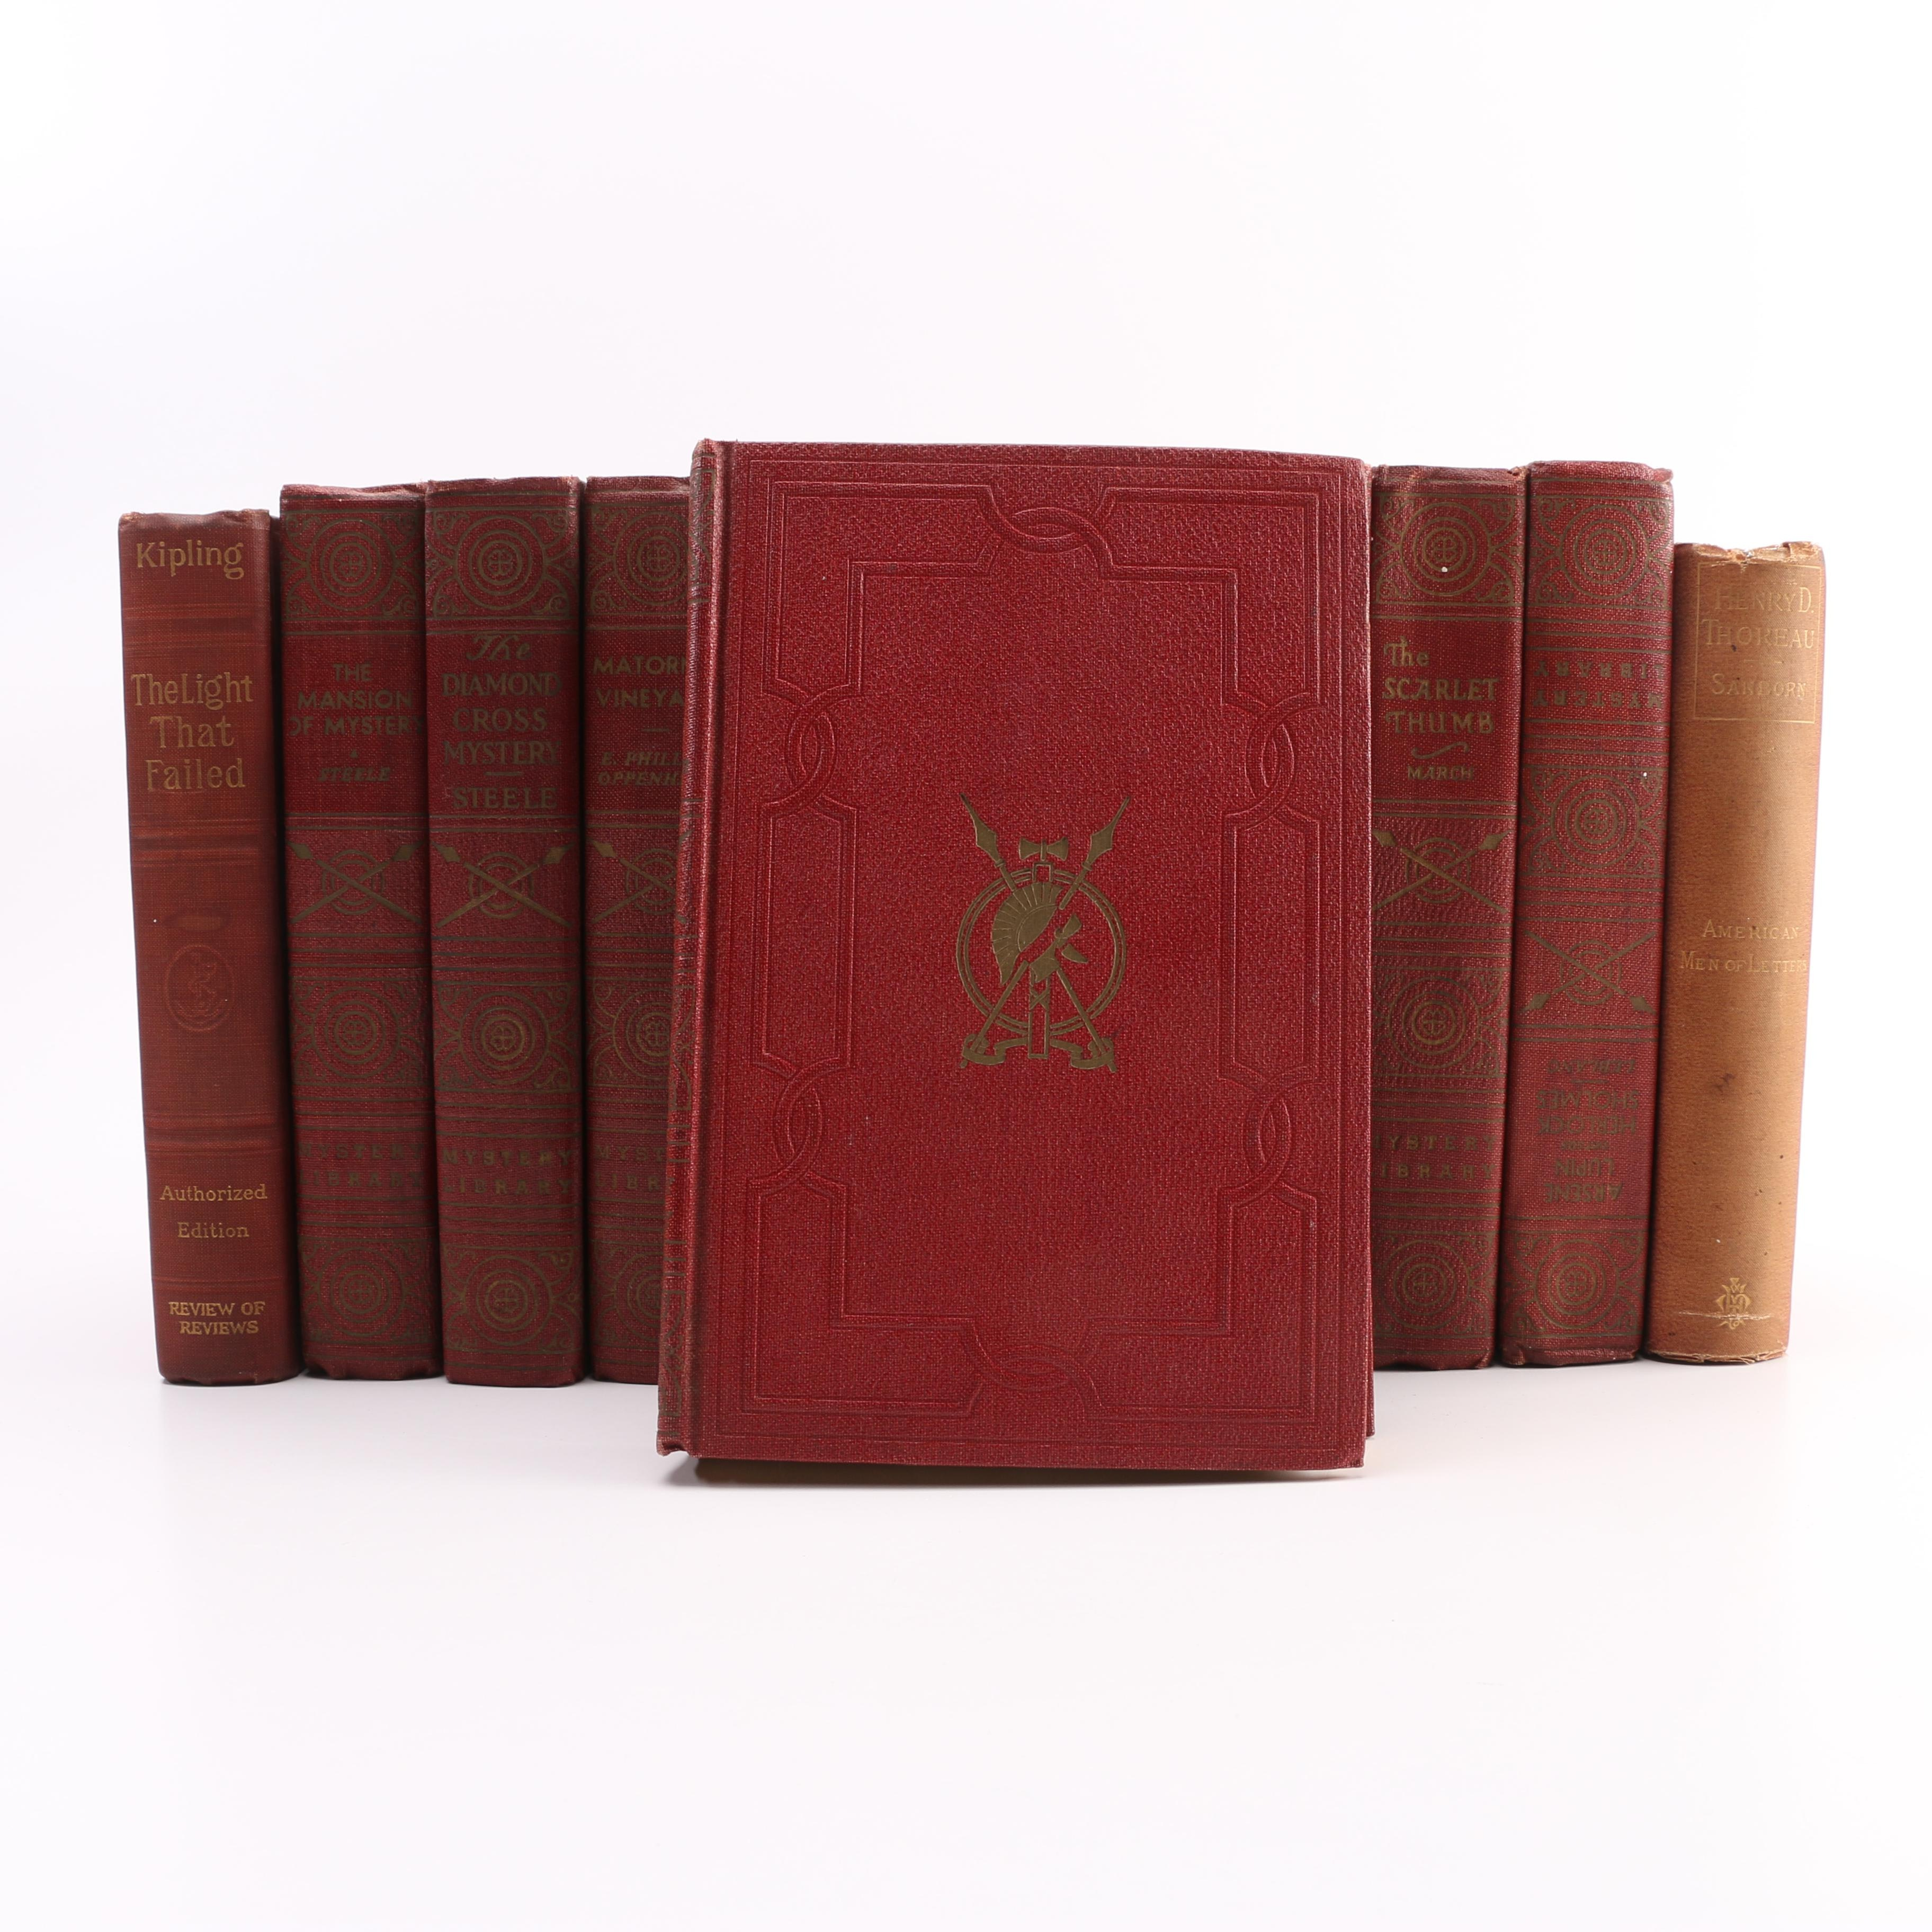 Collection of Antique and Vintage Books